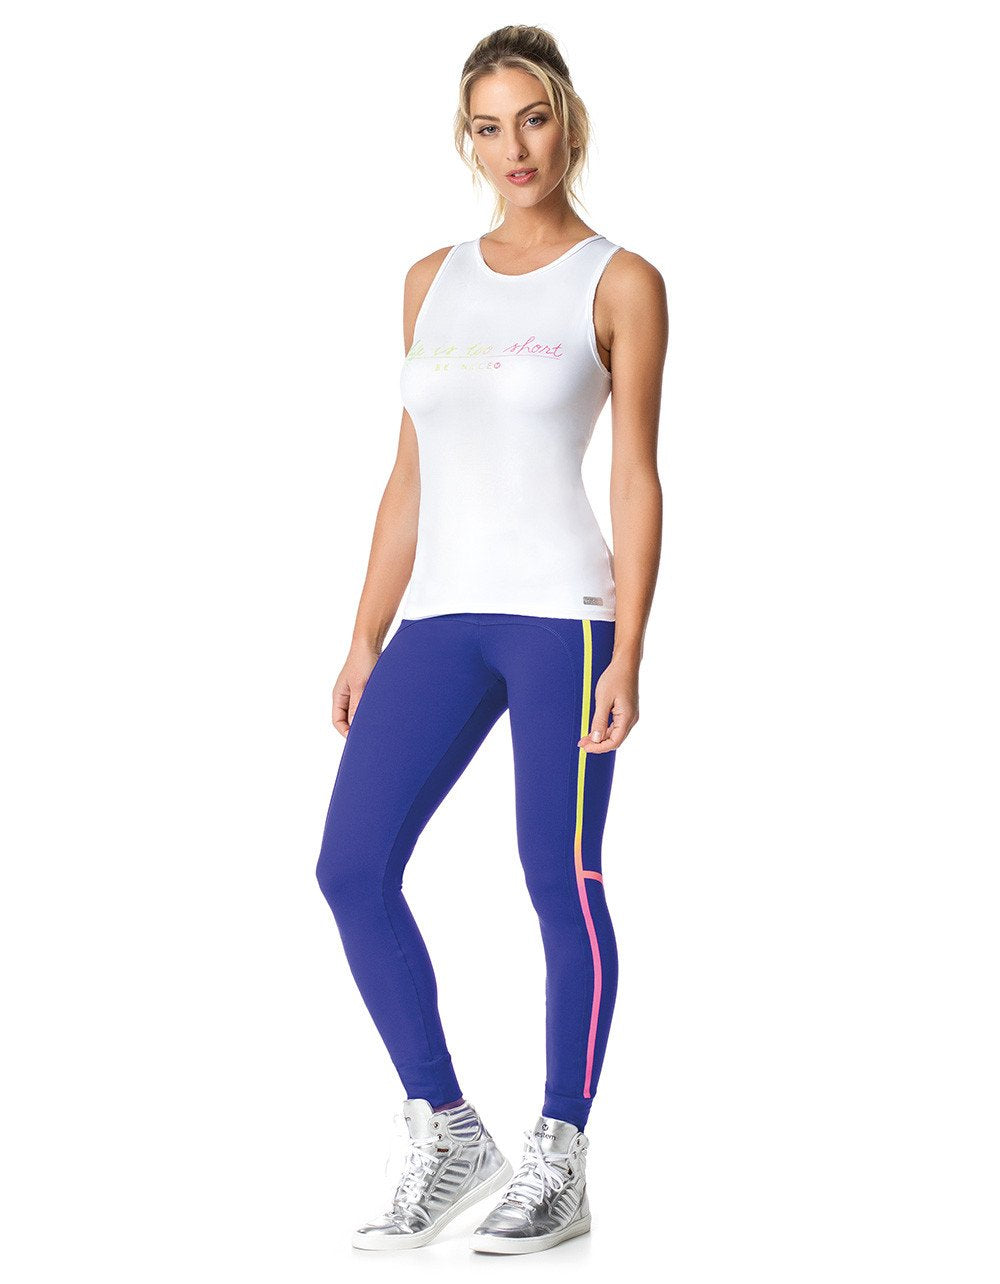 TANK TOP 247 LIFE WHITE-Activewear-J Steed